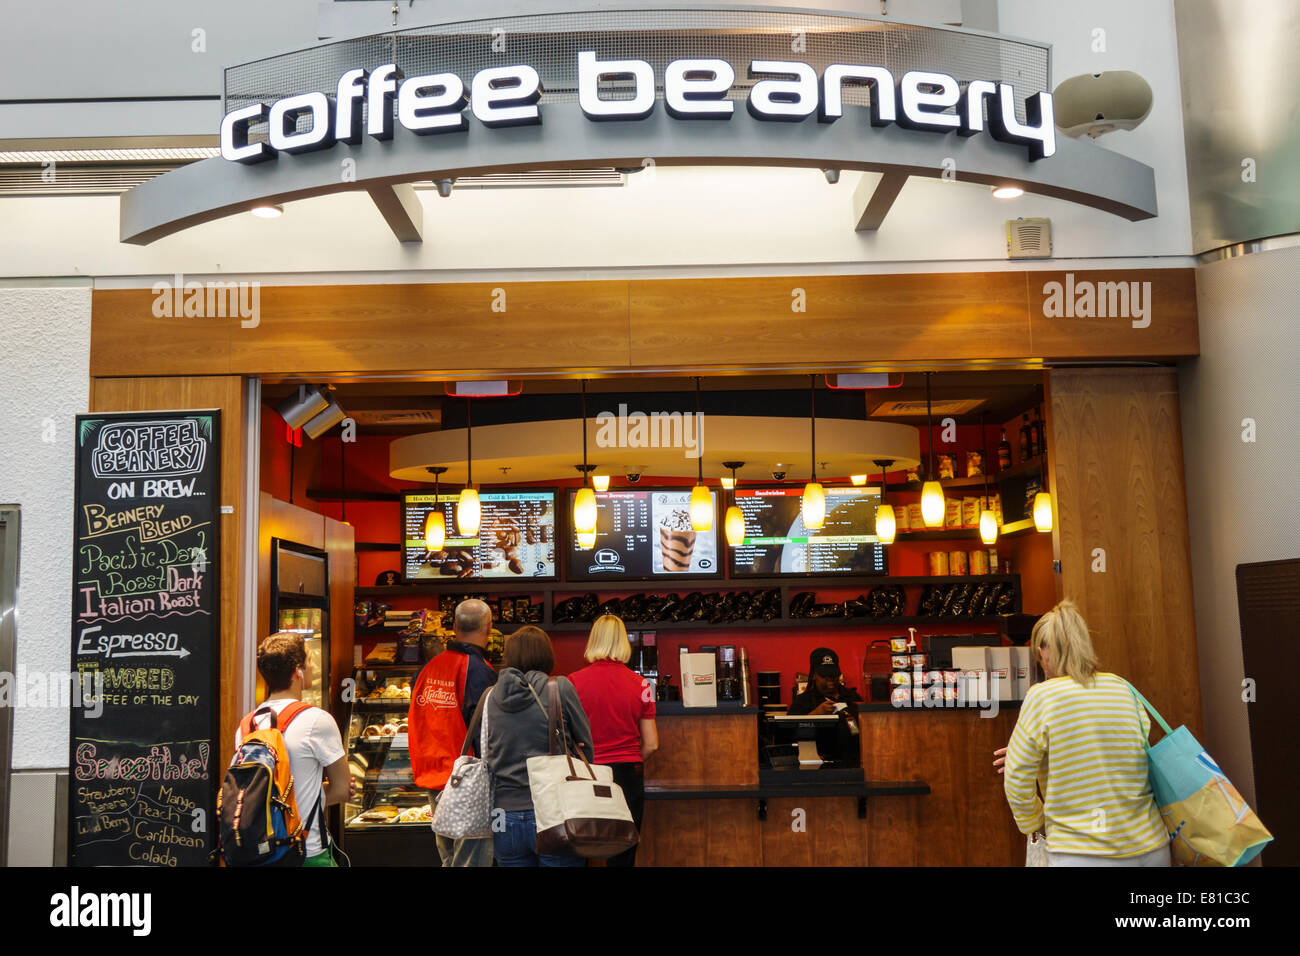 The latest Tweets from Coffee Beanery (@coffeebeaneryHQ). A family owned company that has been in business since Specializing in small batch roasted coffee with delicious flavors. Flushing, MI.